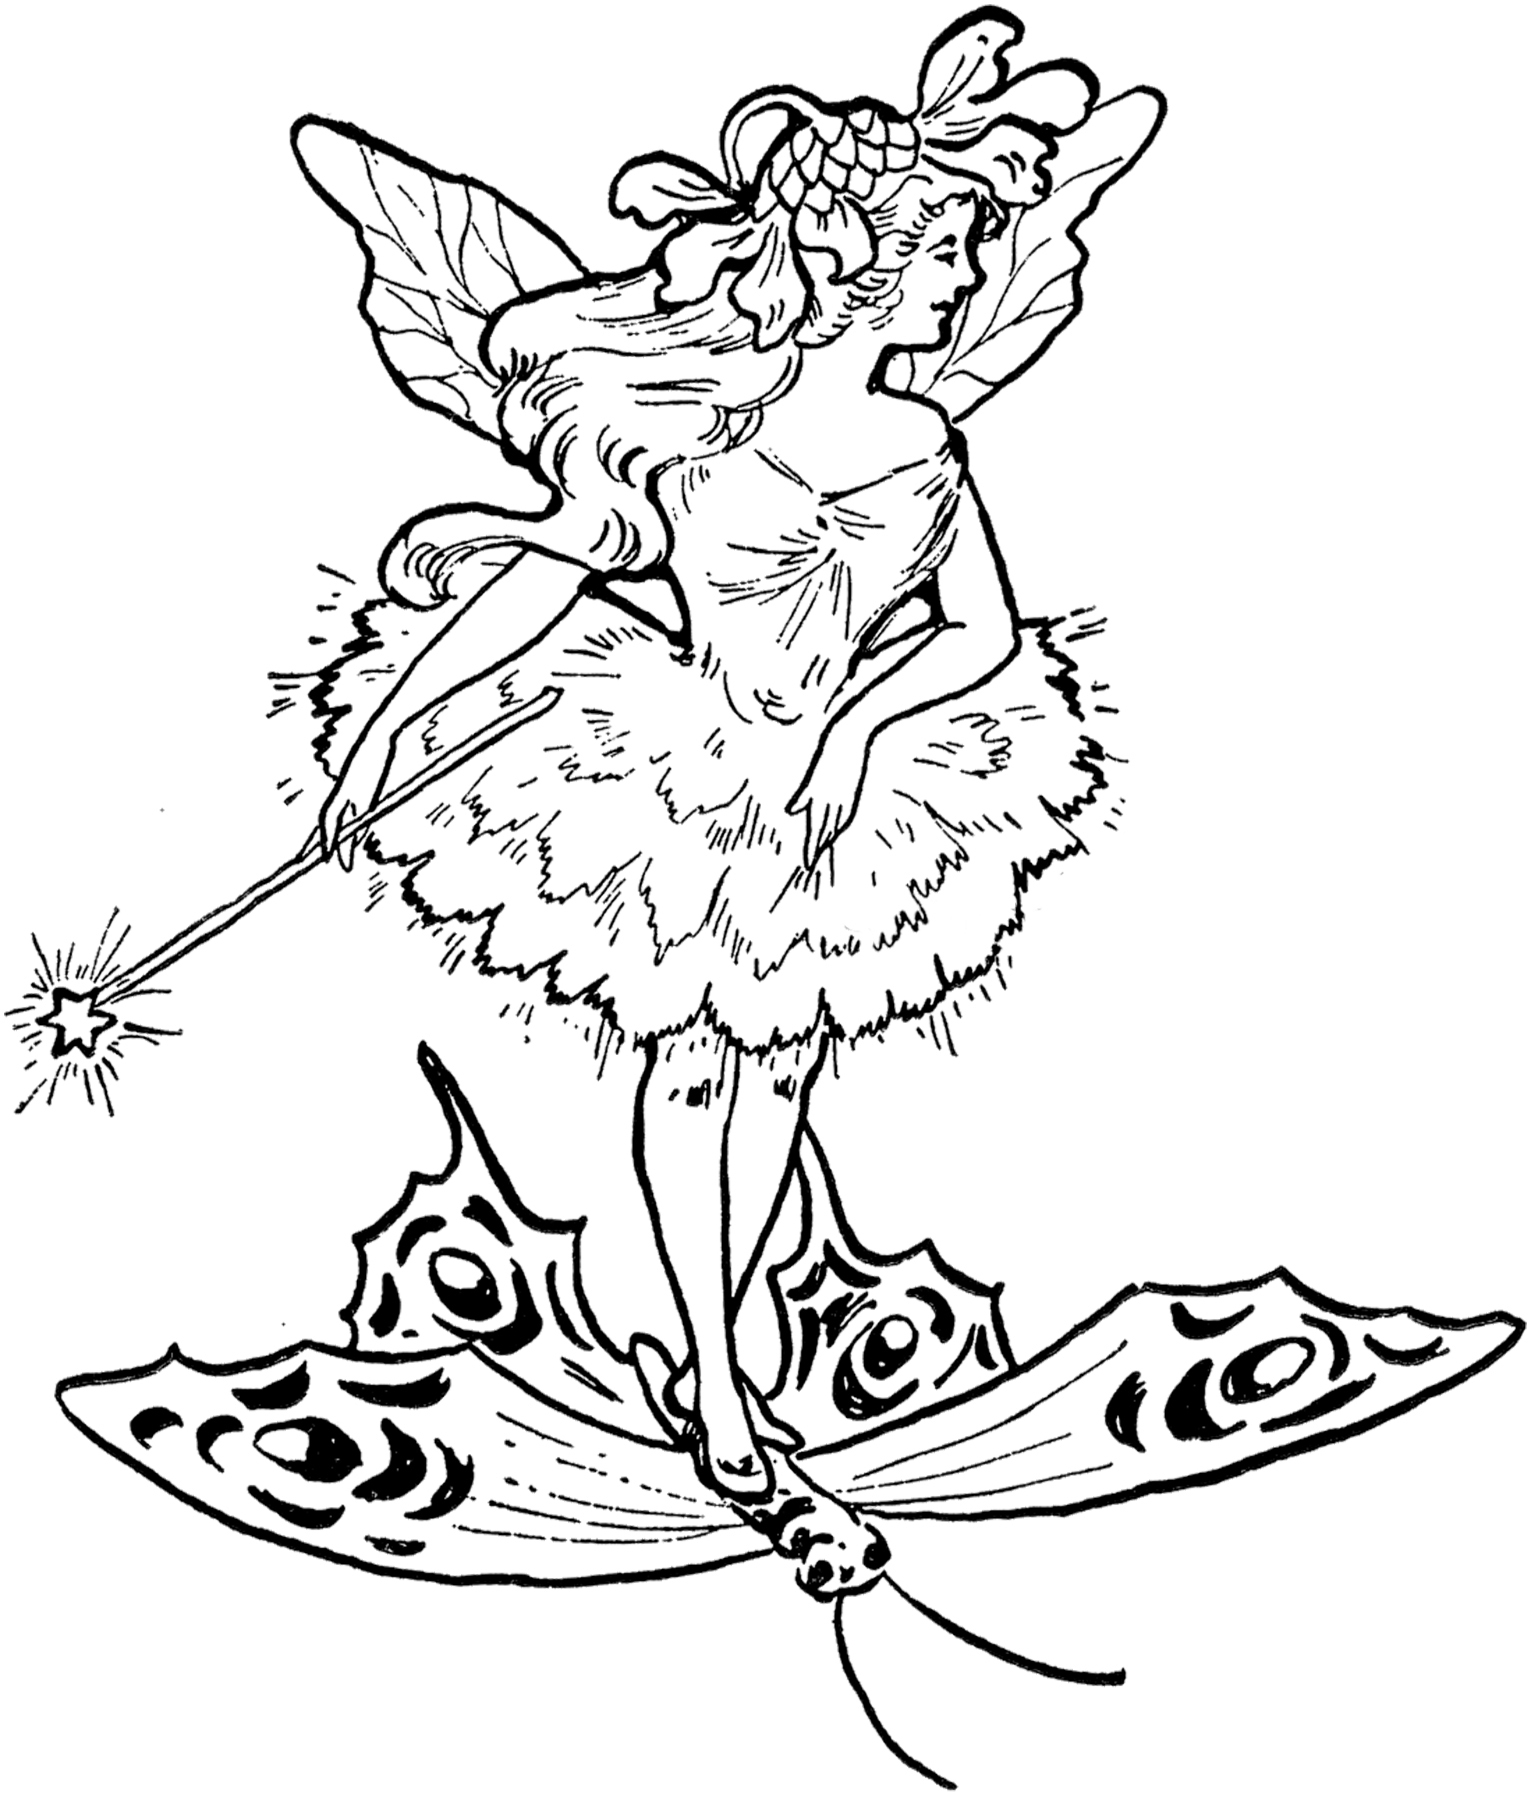 Free Fairy Black And White Clipart, Download Free Clip Art, Free.